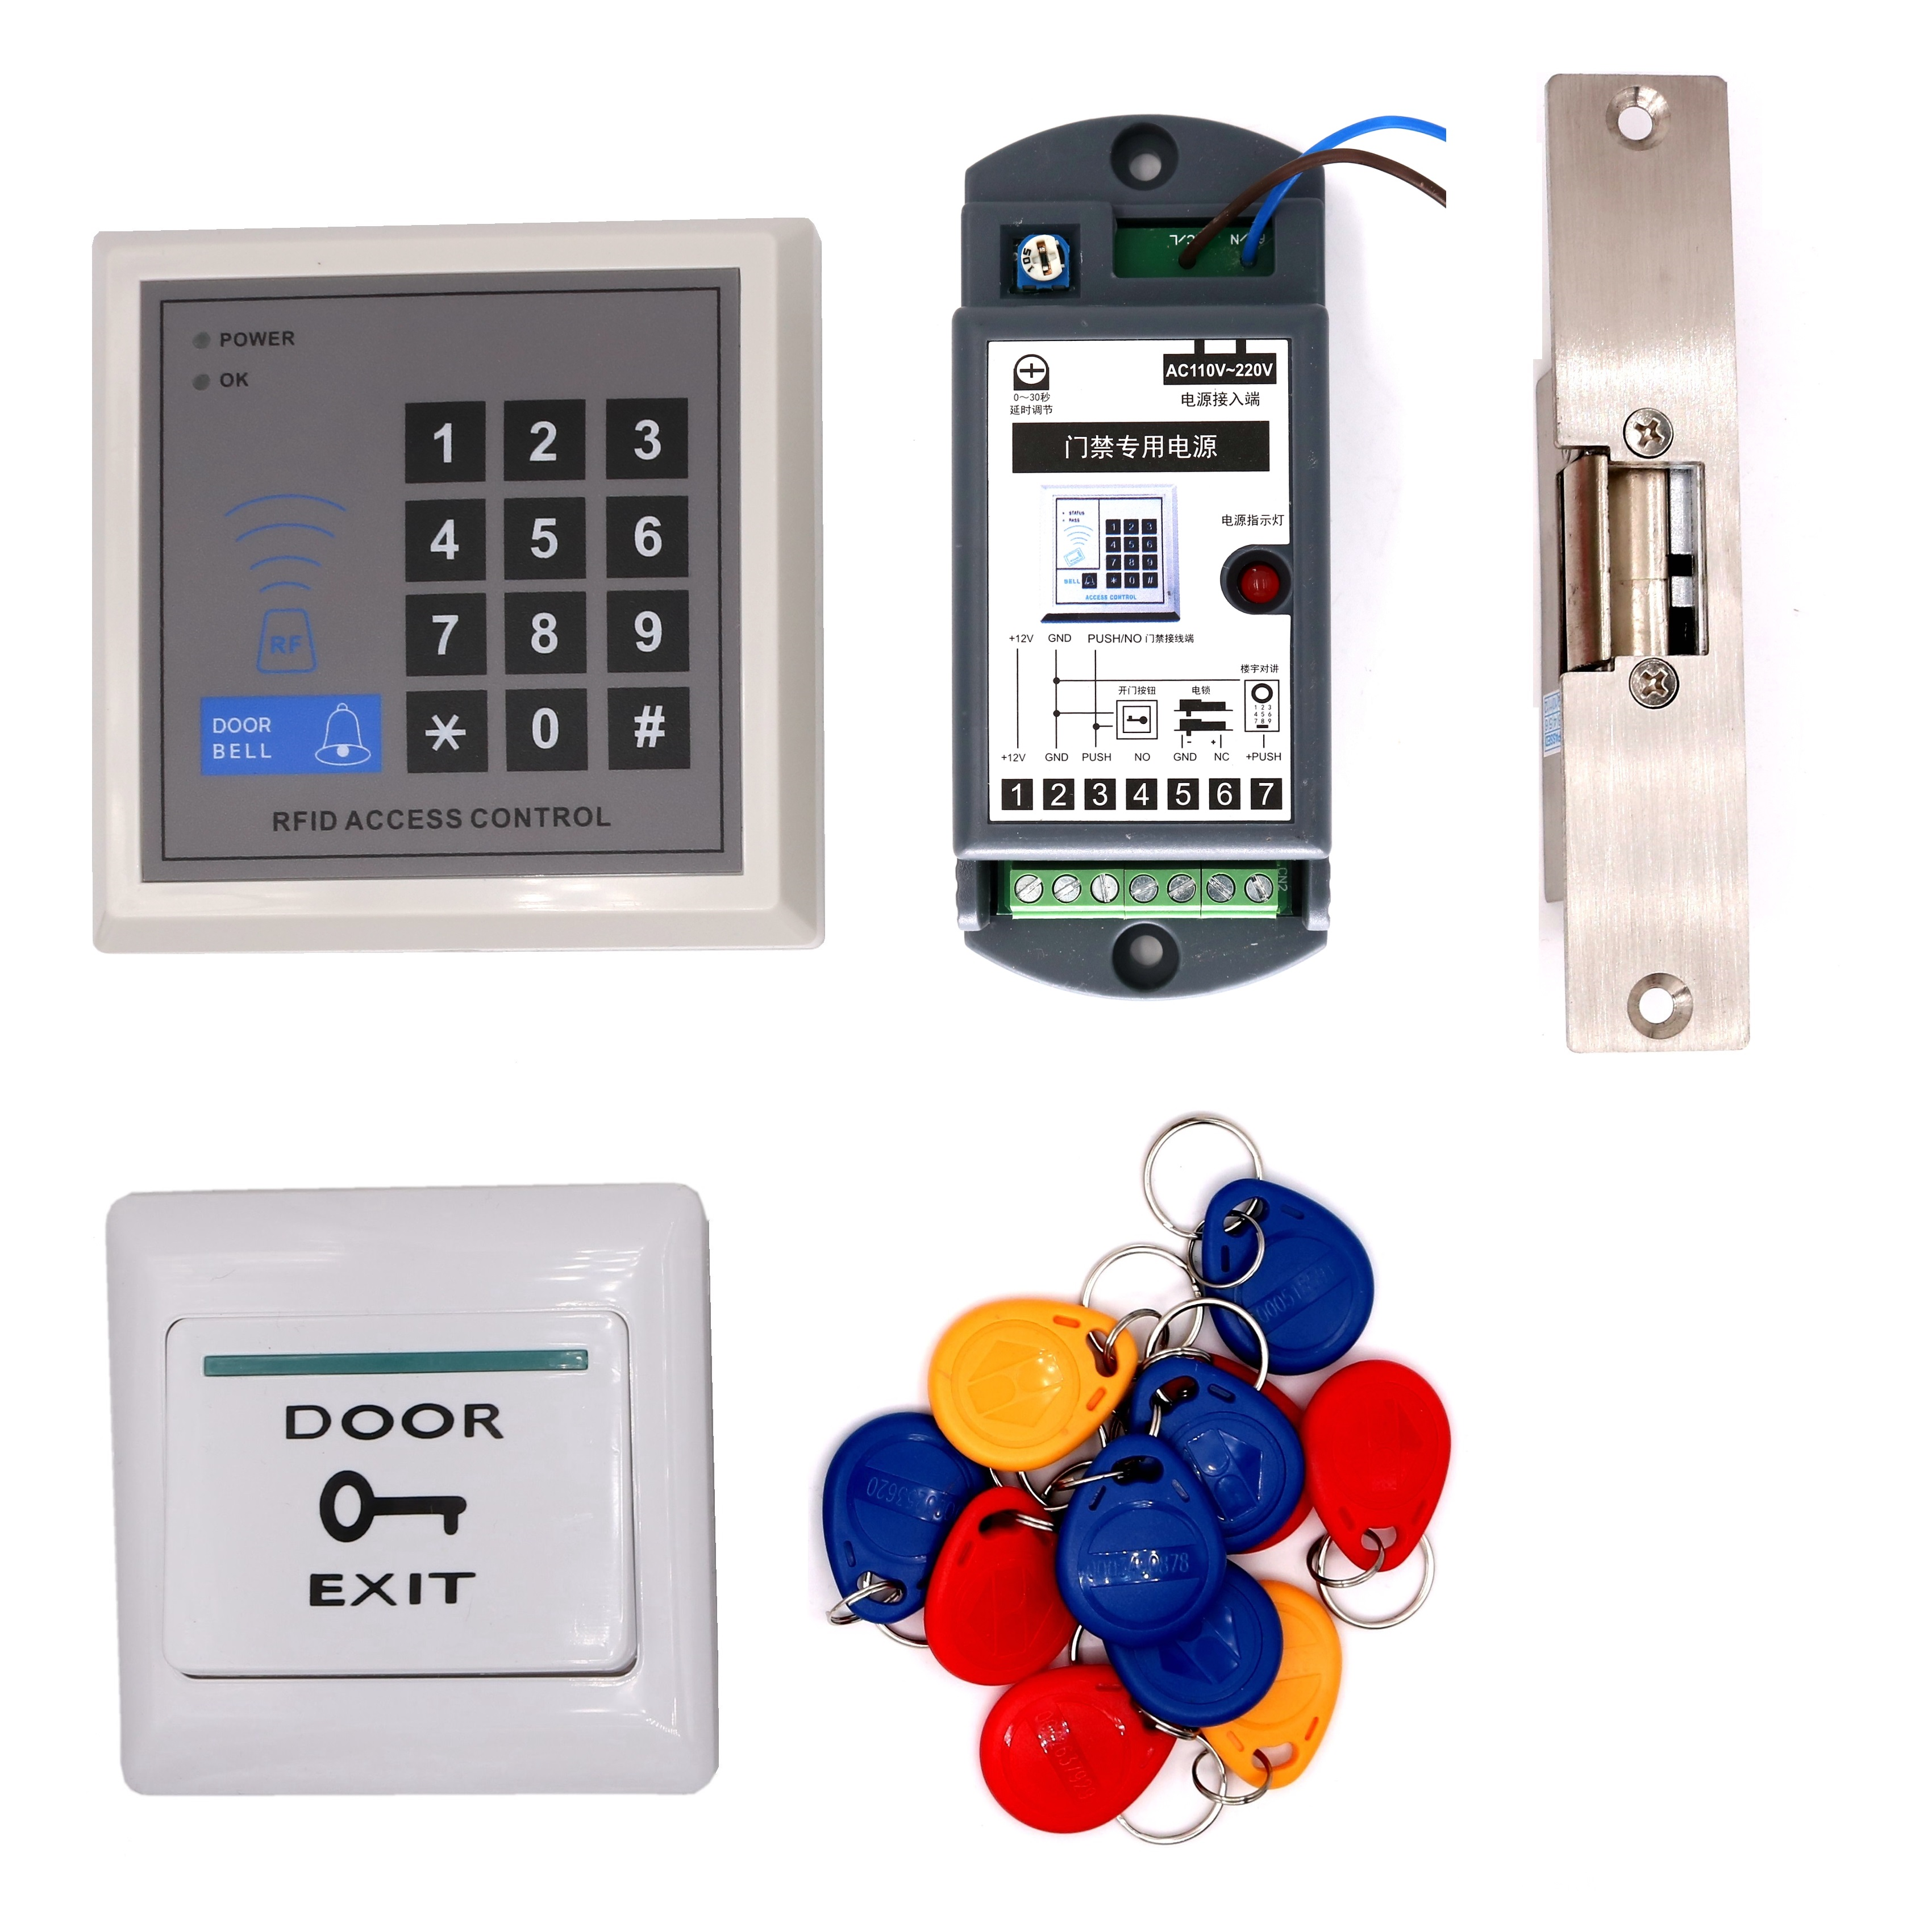 RFID 125Khz Proximity Card Password Entry System Door Gate Access Control system Fail secure Fail Safe Electric Strike Kit<br>